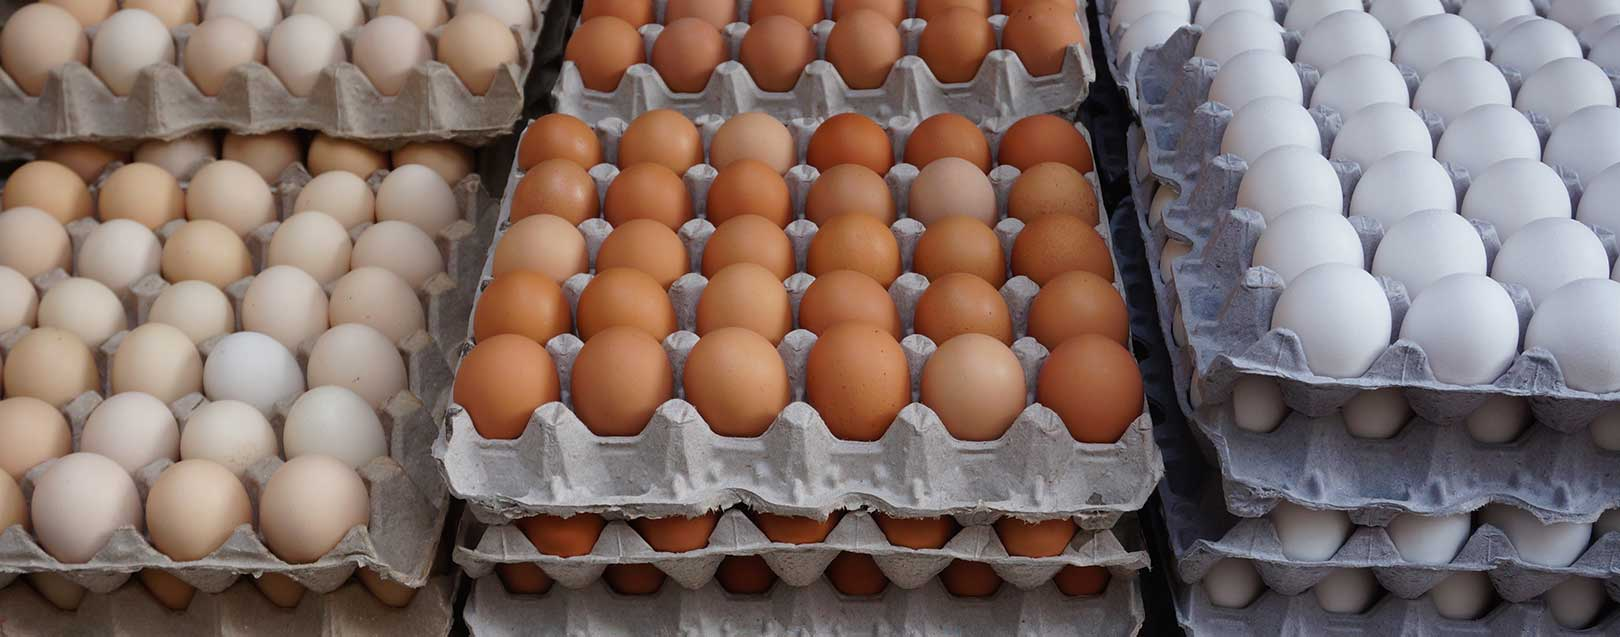 Livestock farmers urge Govt to take measures to resume egg exports to Qatar